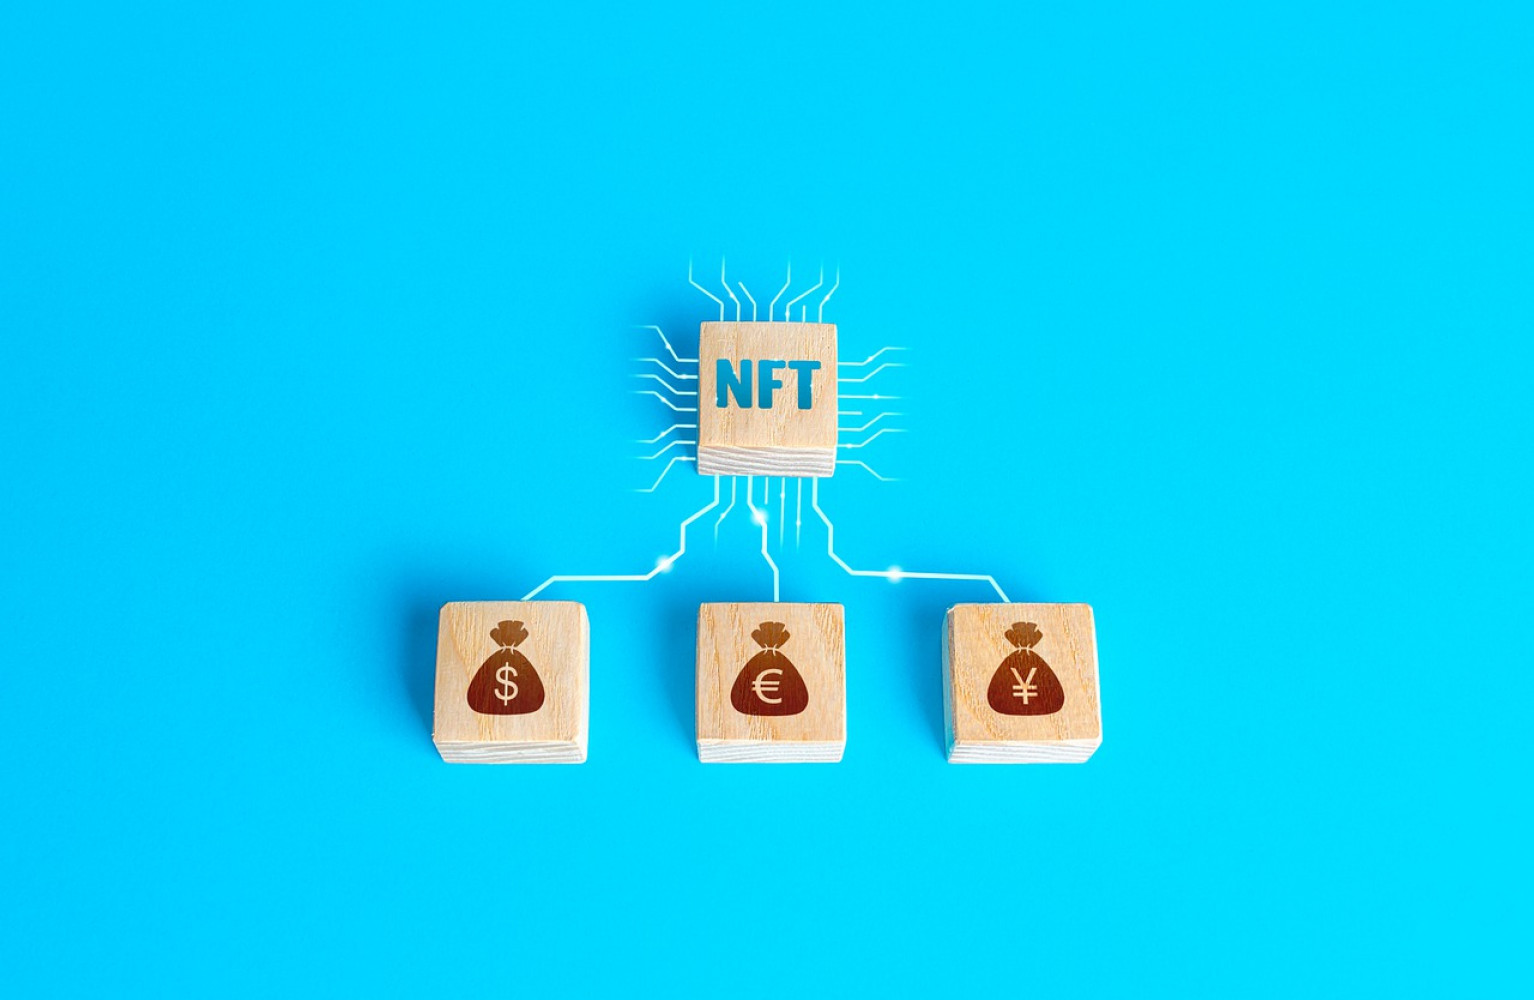 NFT's being used to borrow or lend against